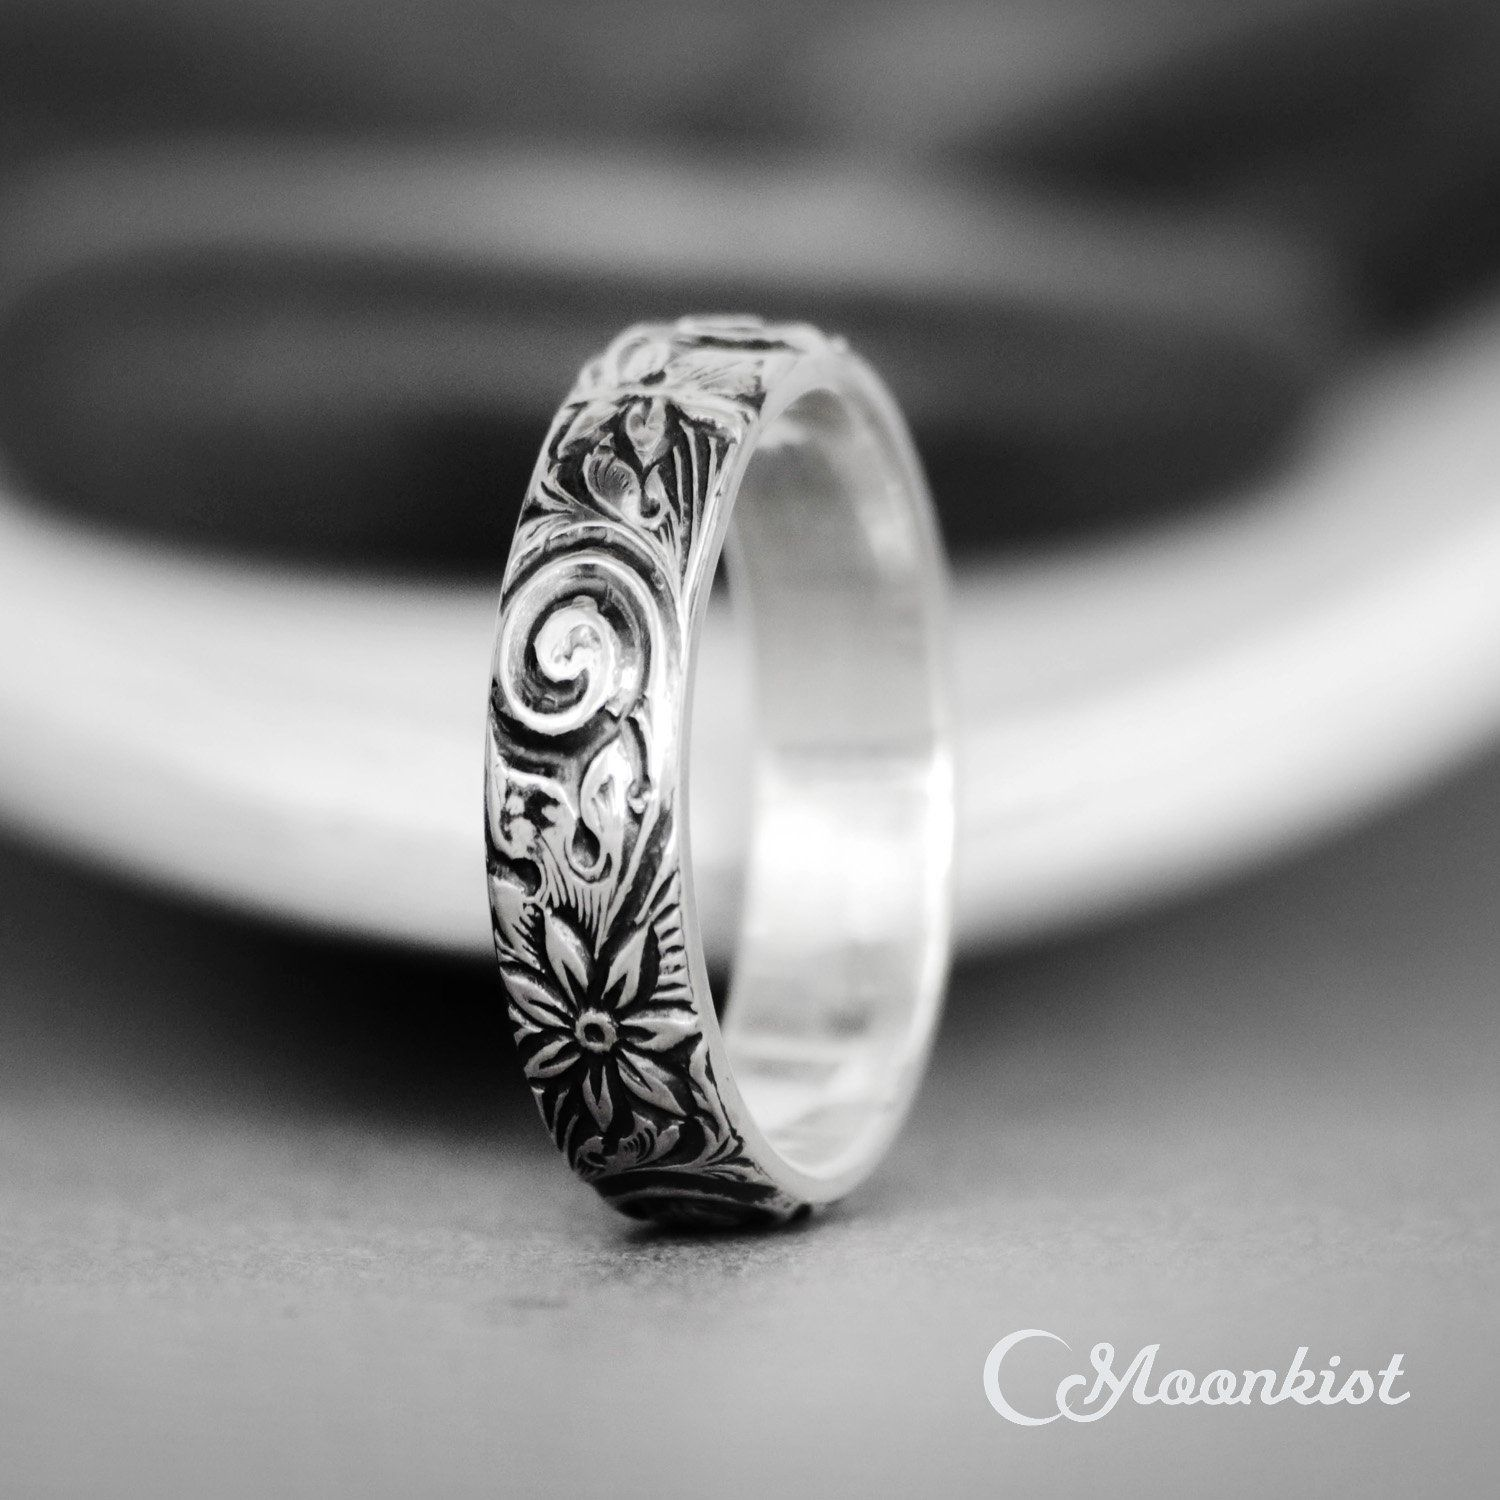 Silver Wedding Band Bride and Groom Wedding Band 6mm Spinner Celtic Ring Personalize Sterling Silver Wedding Ring Promise Ring